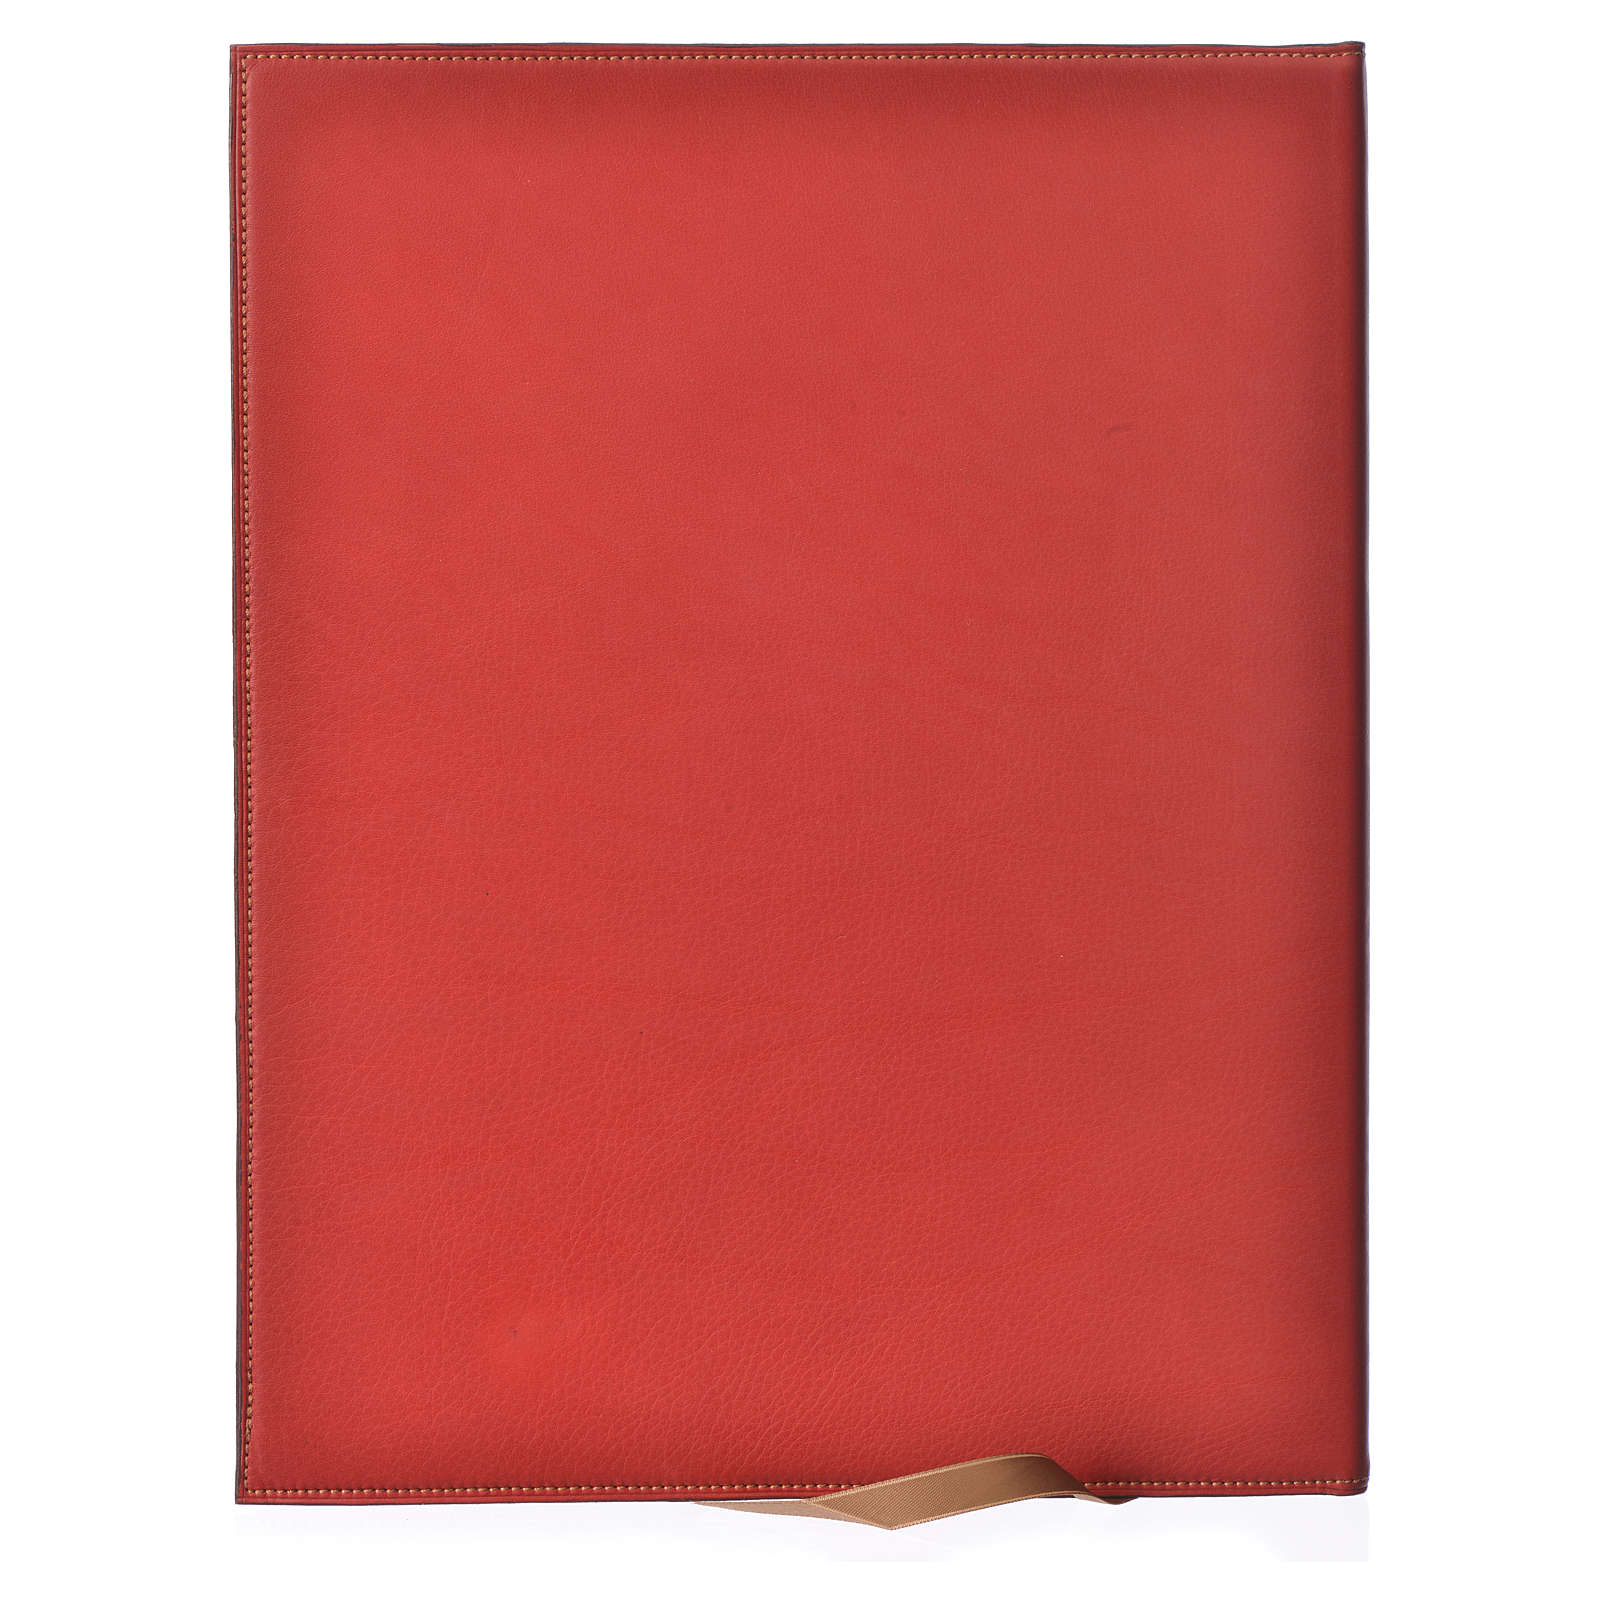 Folder for sacred rites in red leather, hot pressed lamb Bethleem, A4 size 4